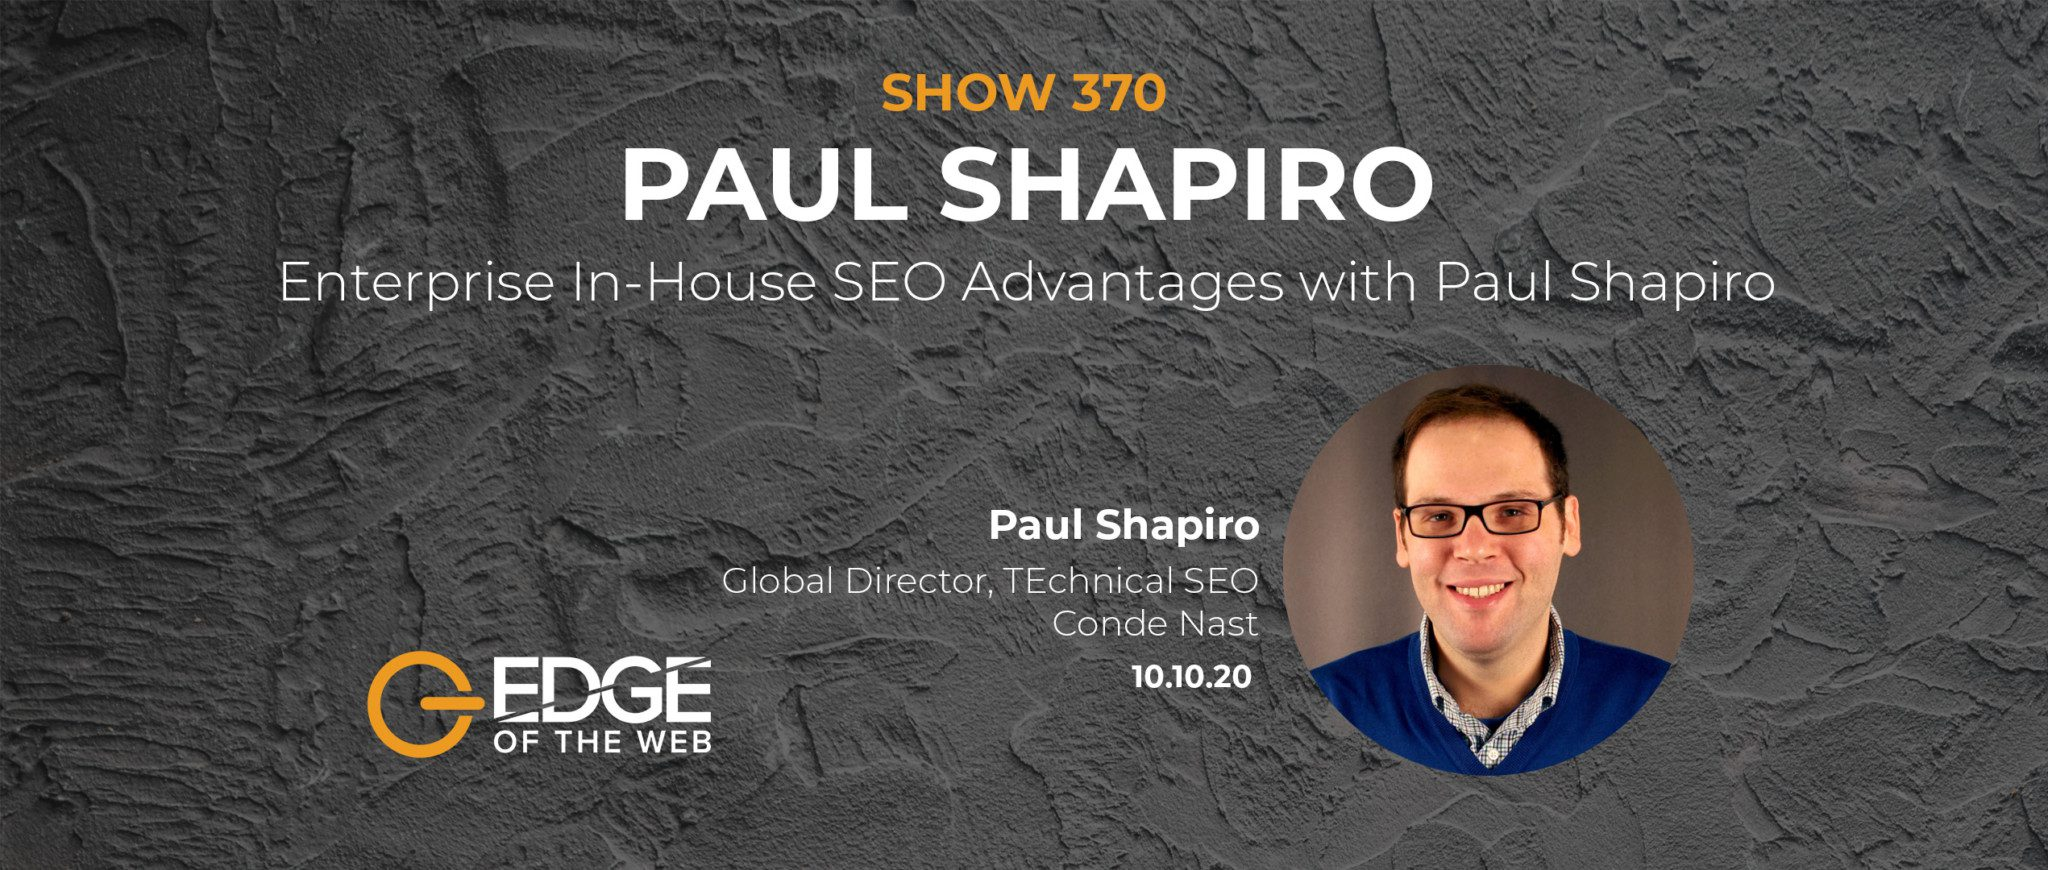 EP 370: Enterprise In-House SEO Advantages with Paul Shapiro